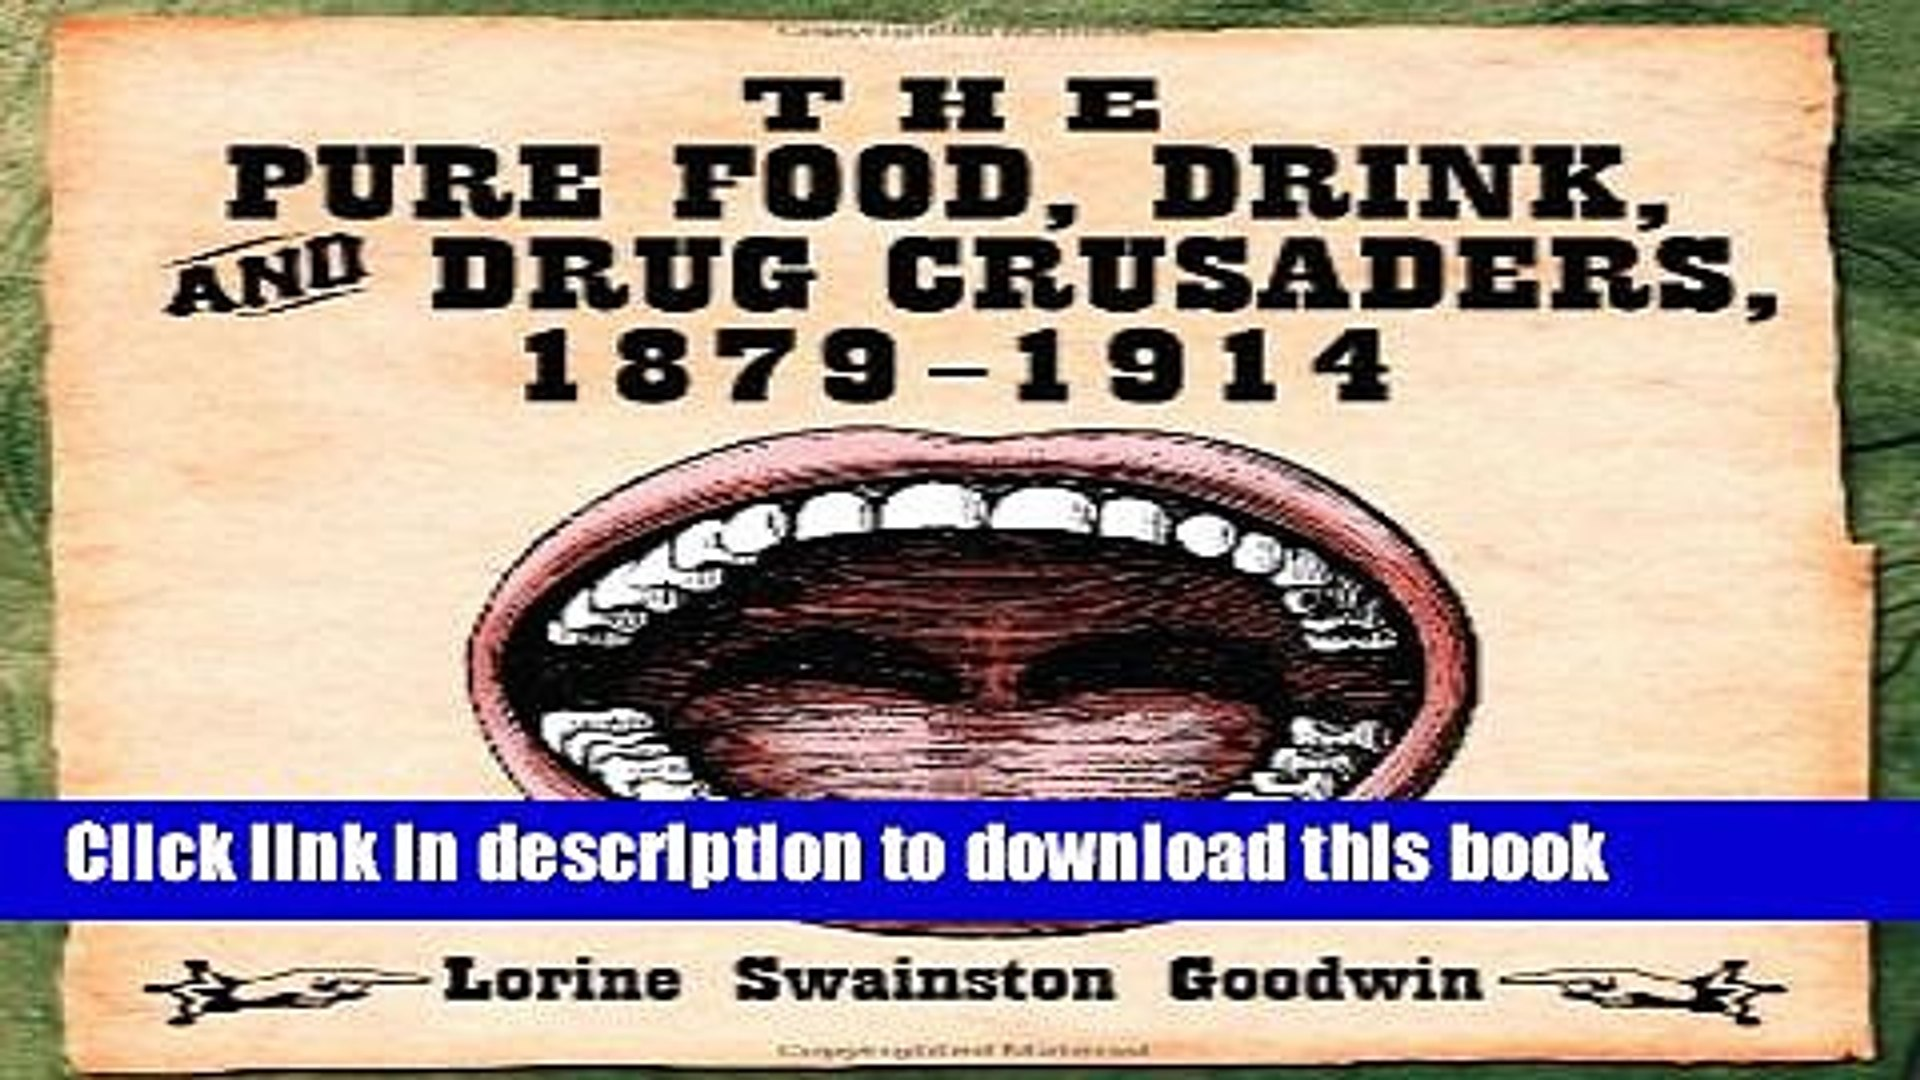 [PDF] The Pure Food, Drink, and Drug Crusaders, 1879-1914 [Read] Online